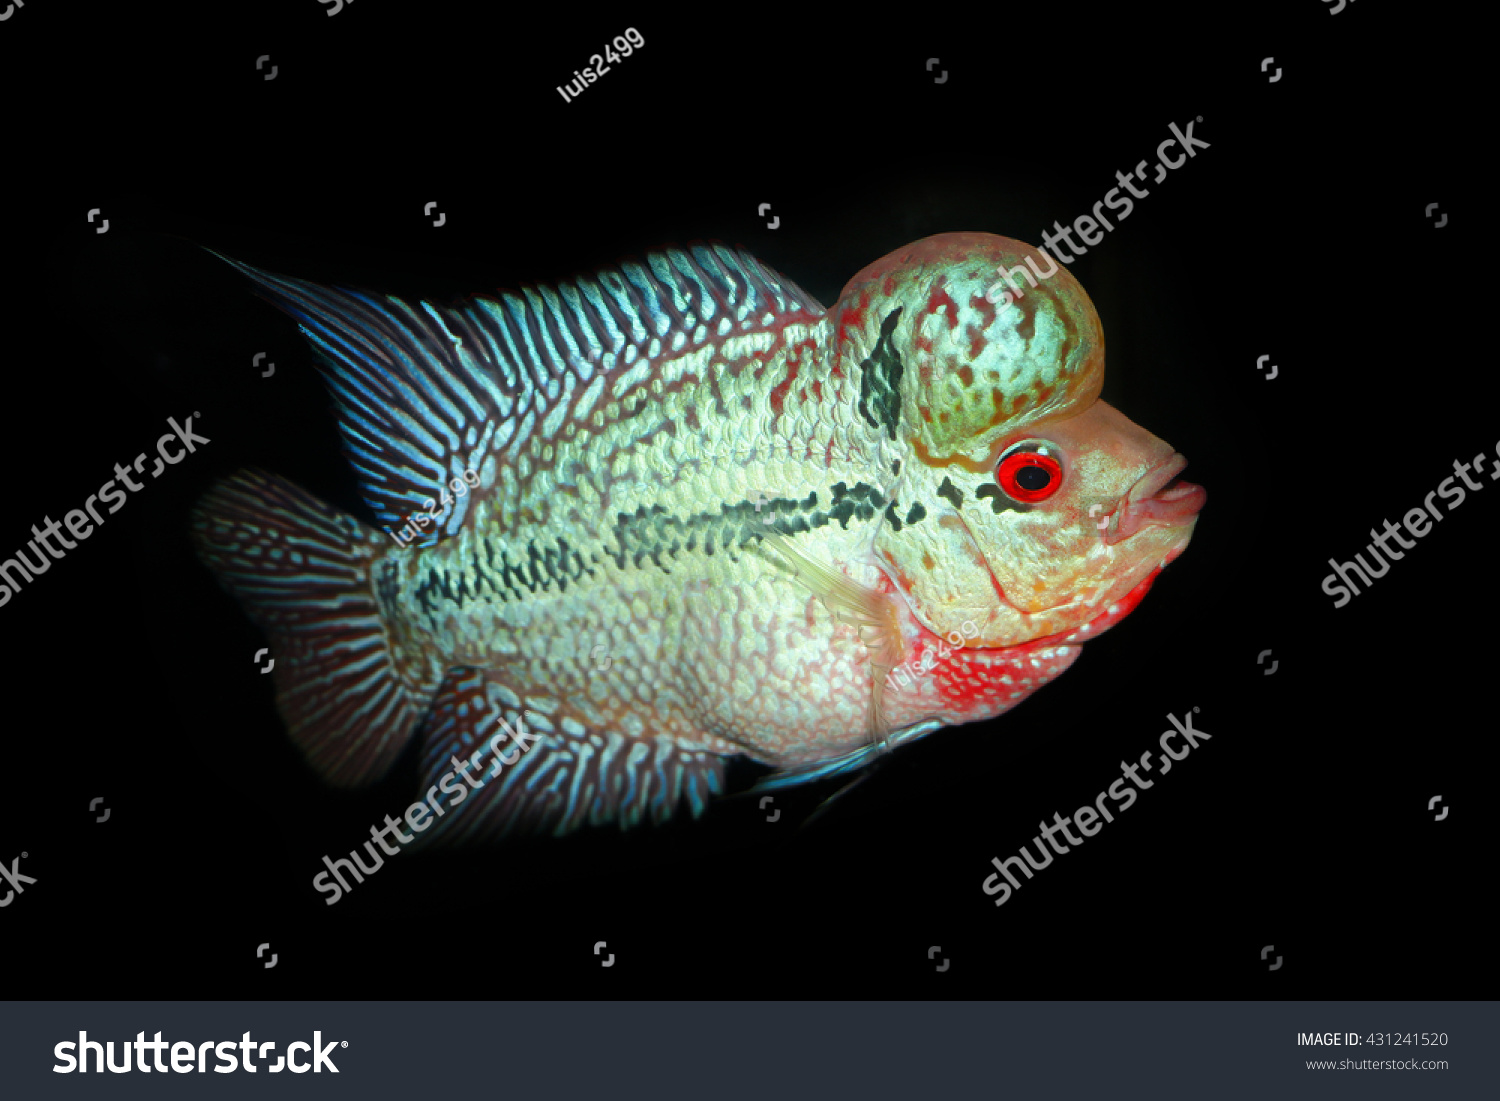 Beautiful Good Color Flowerhorn Cichlid Fish Stock Photo 431241520 ...